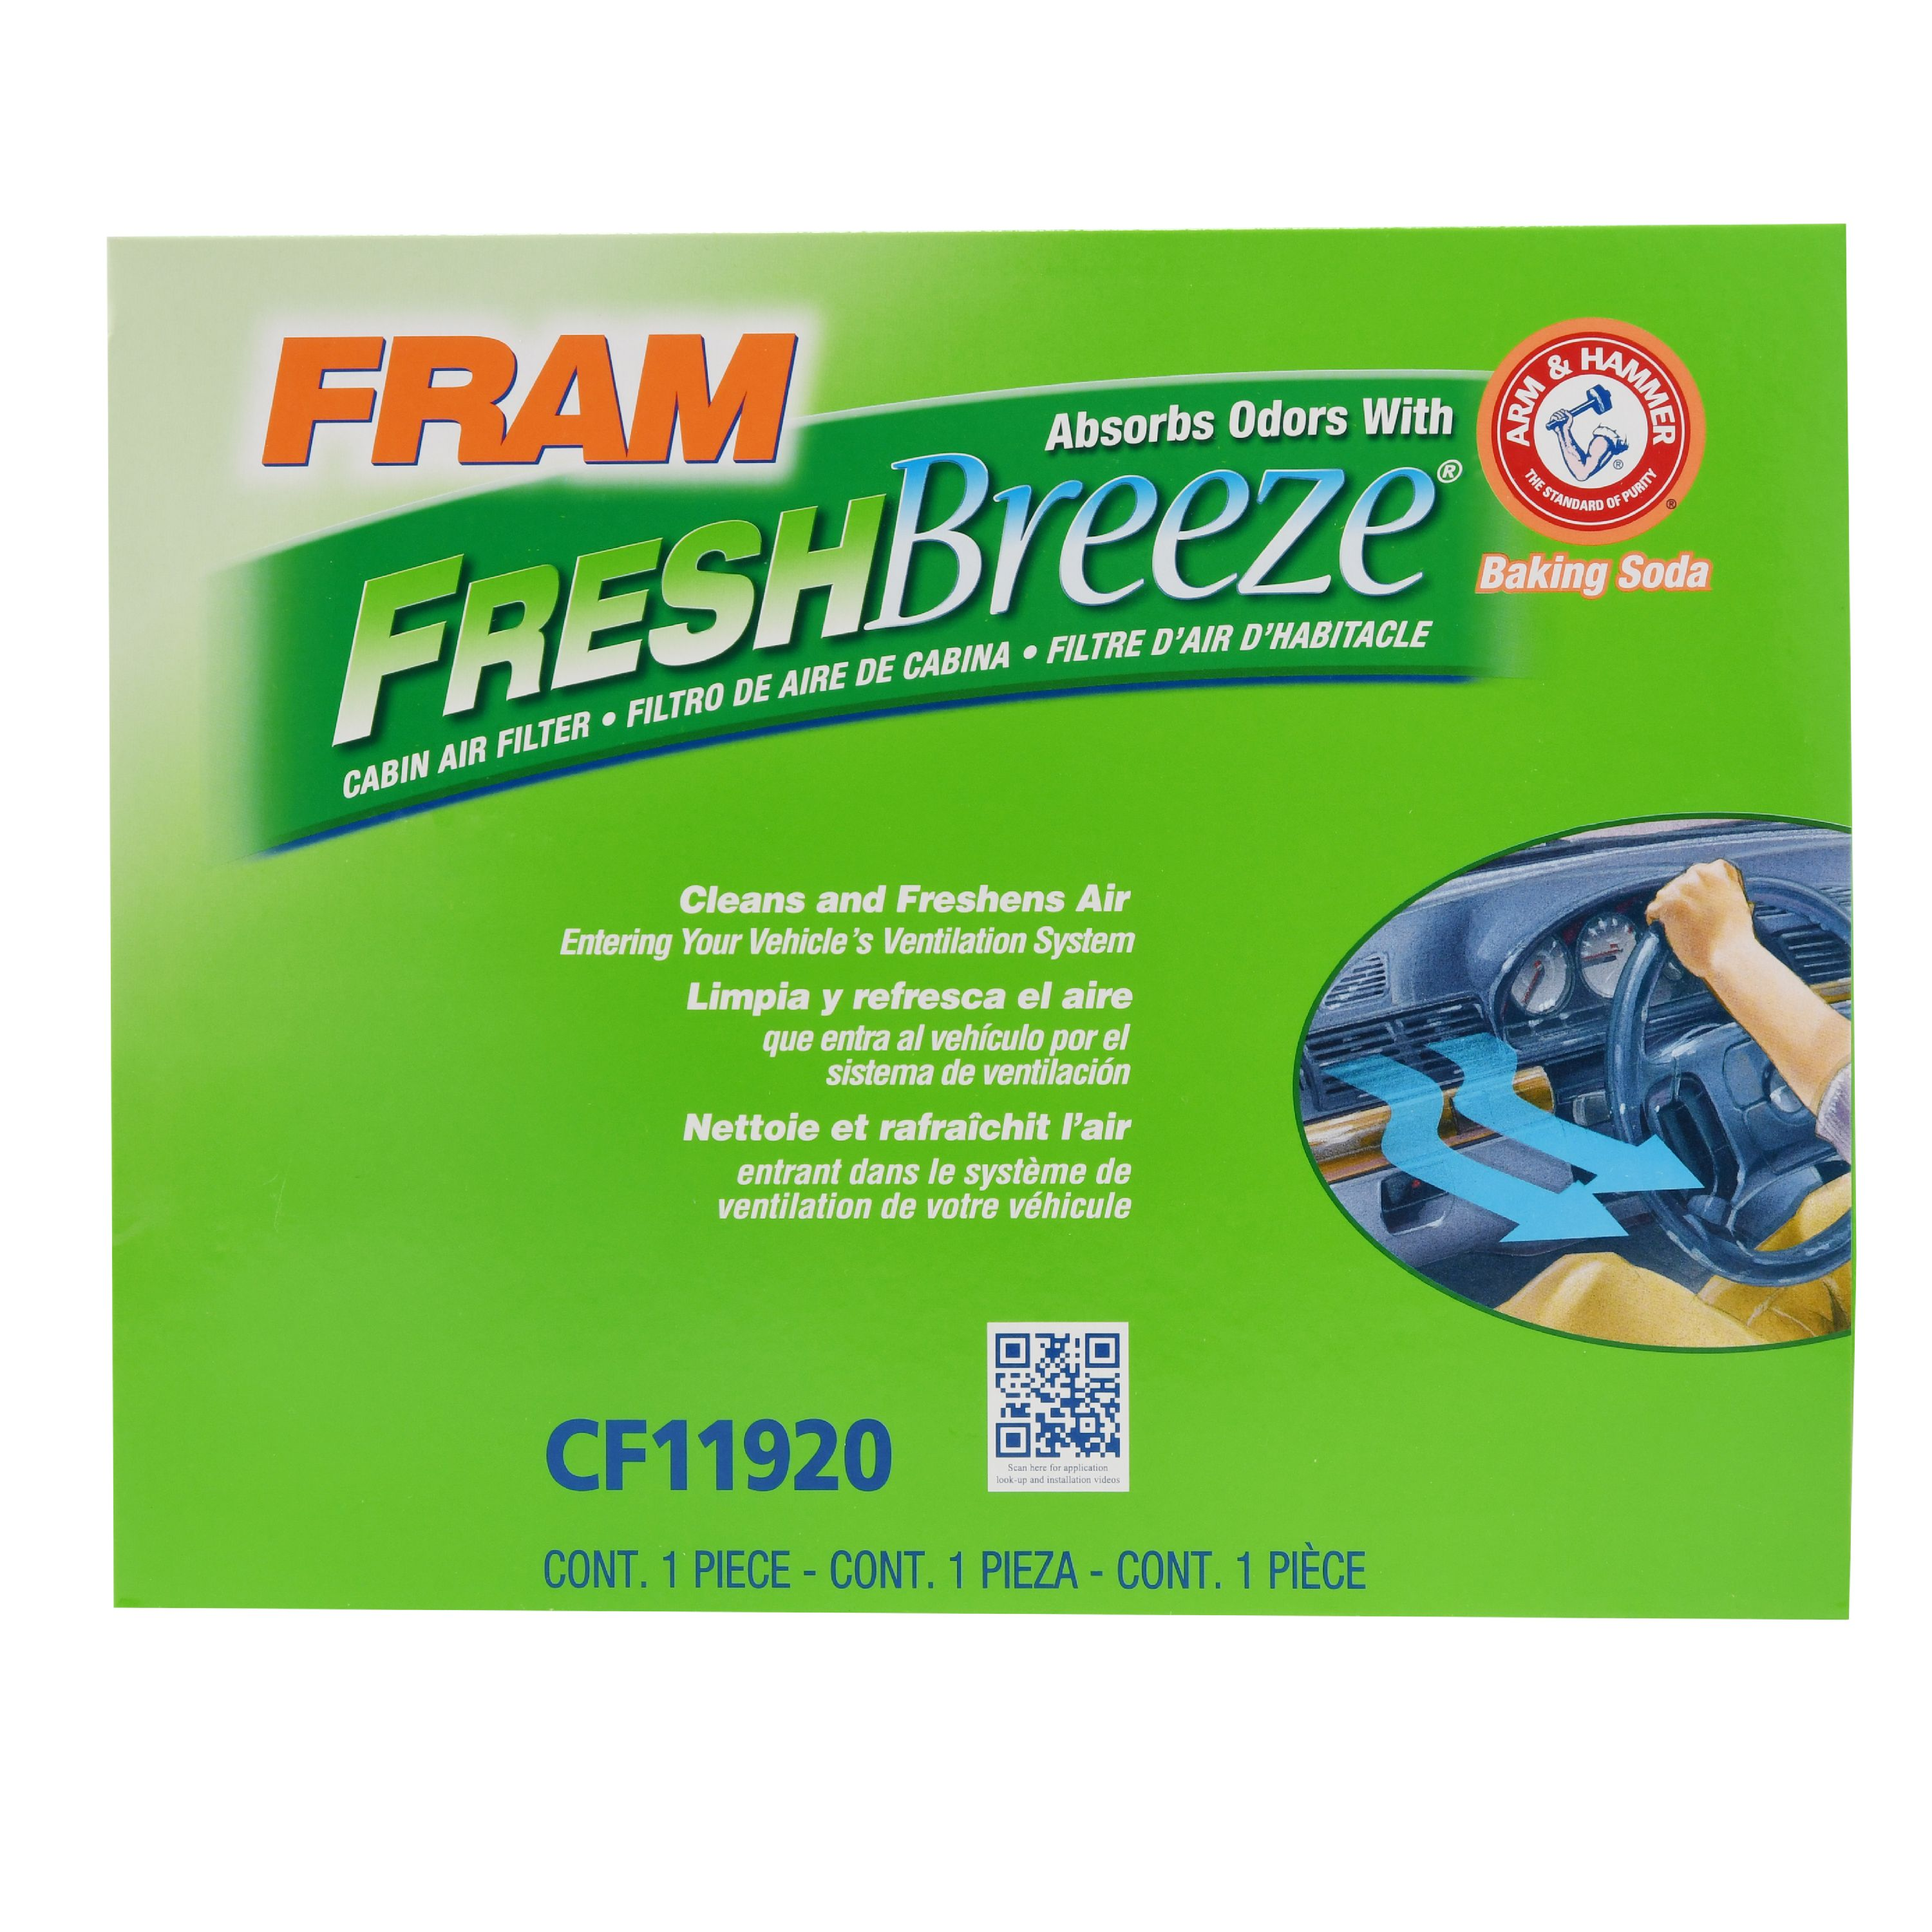 FRAM Fresh Breeze Cabin Air Filter, CF11920